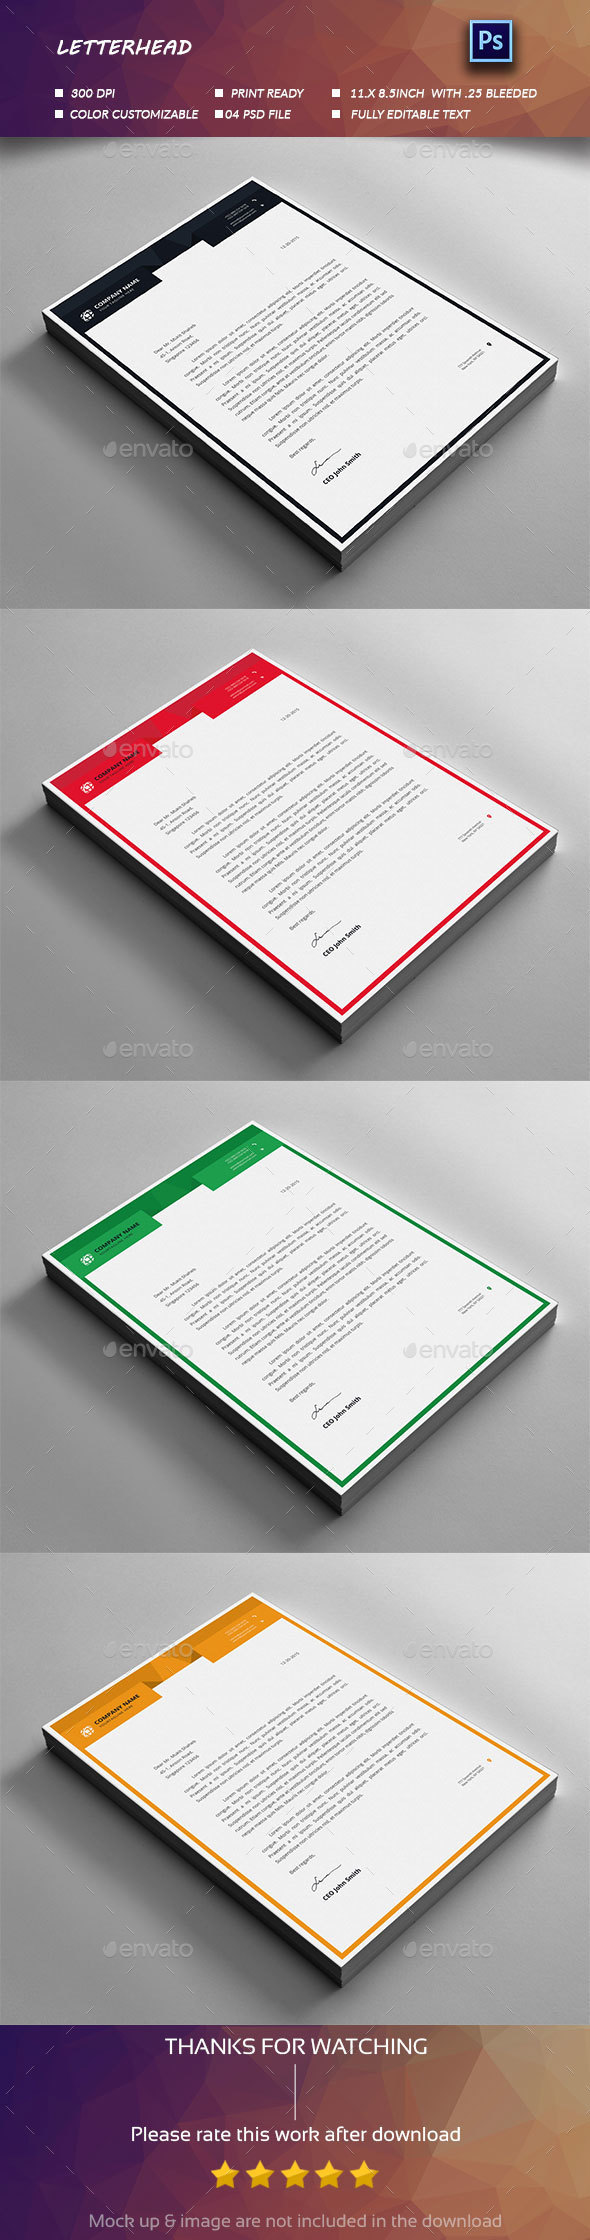 Letterhead Design - Stationery Print Templates